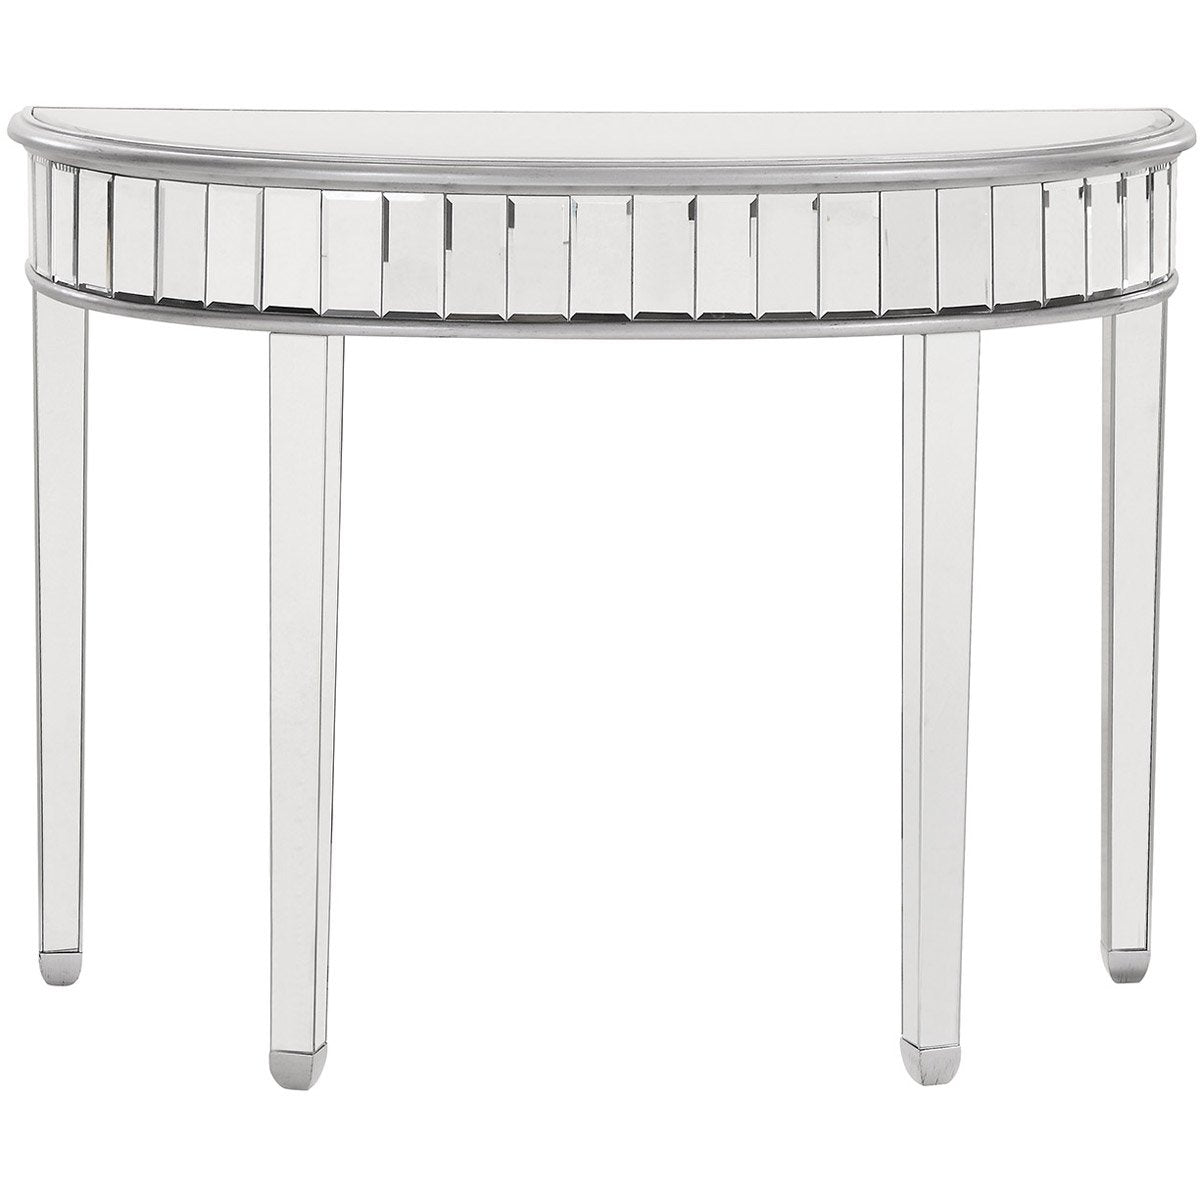 Contempo 42 X 32 Half Moon Table - Antique Silver Finish (Mf6-1004S) Moon Table